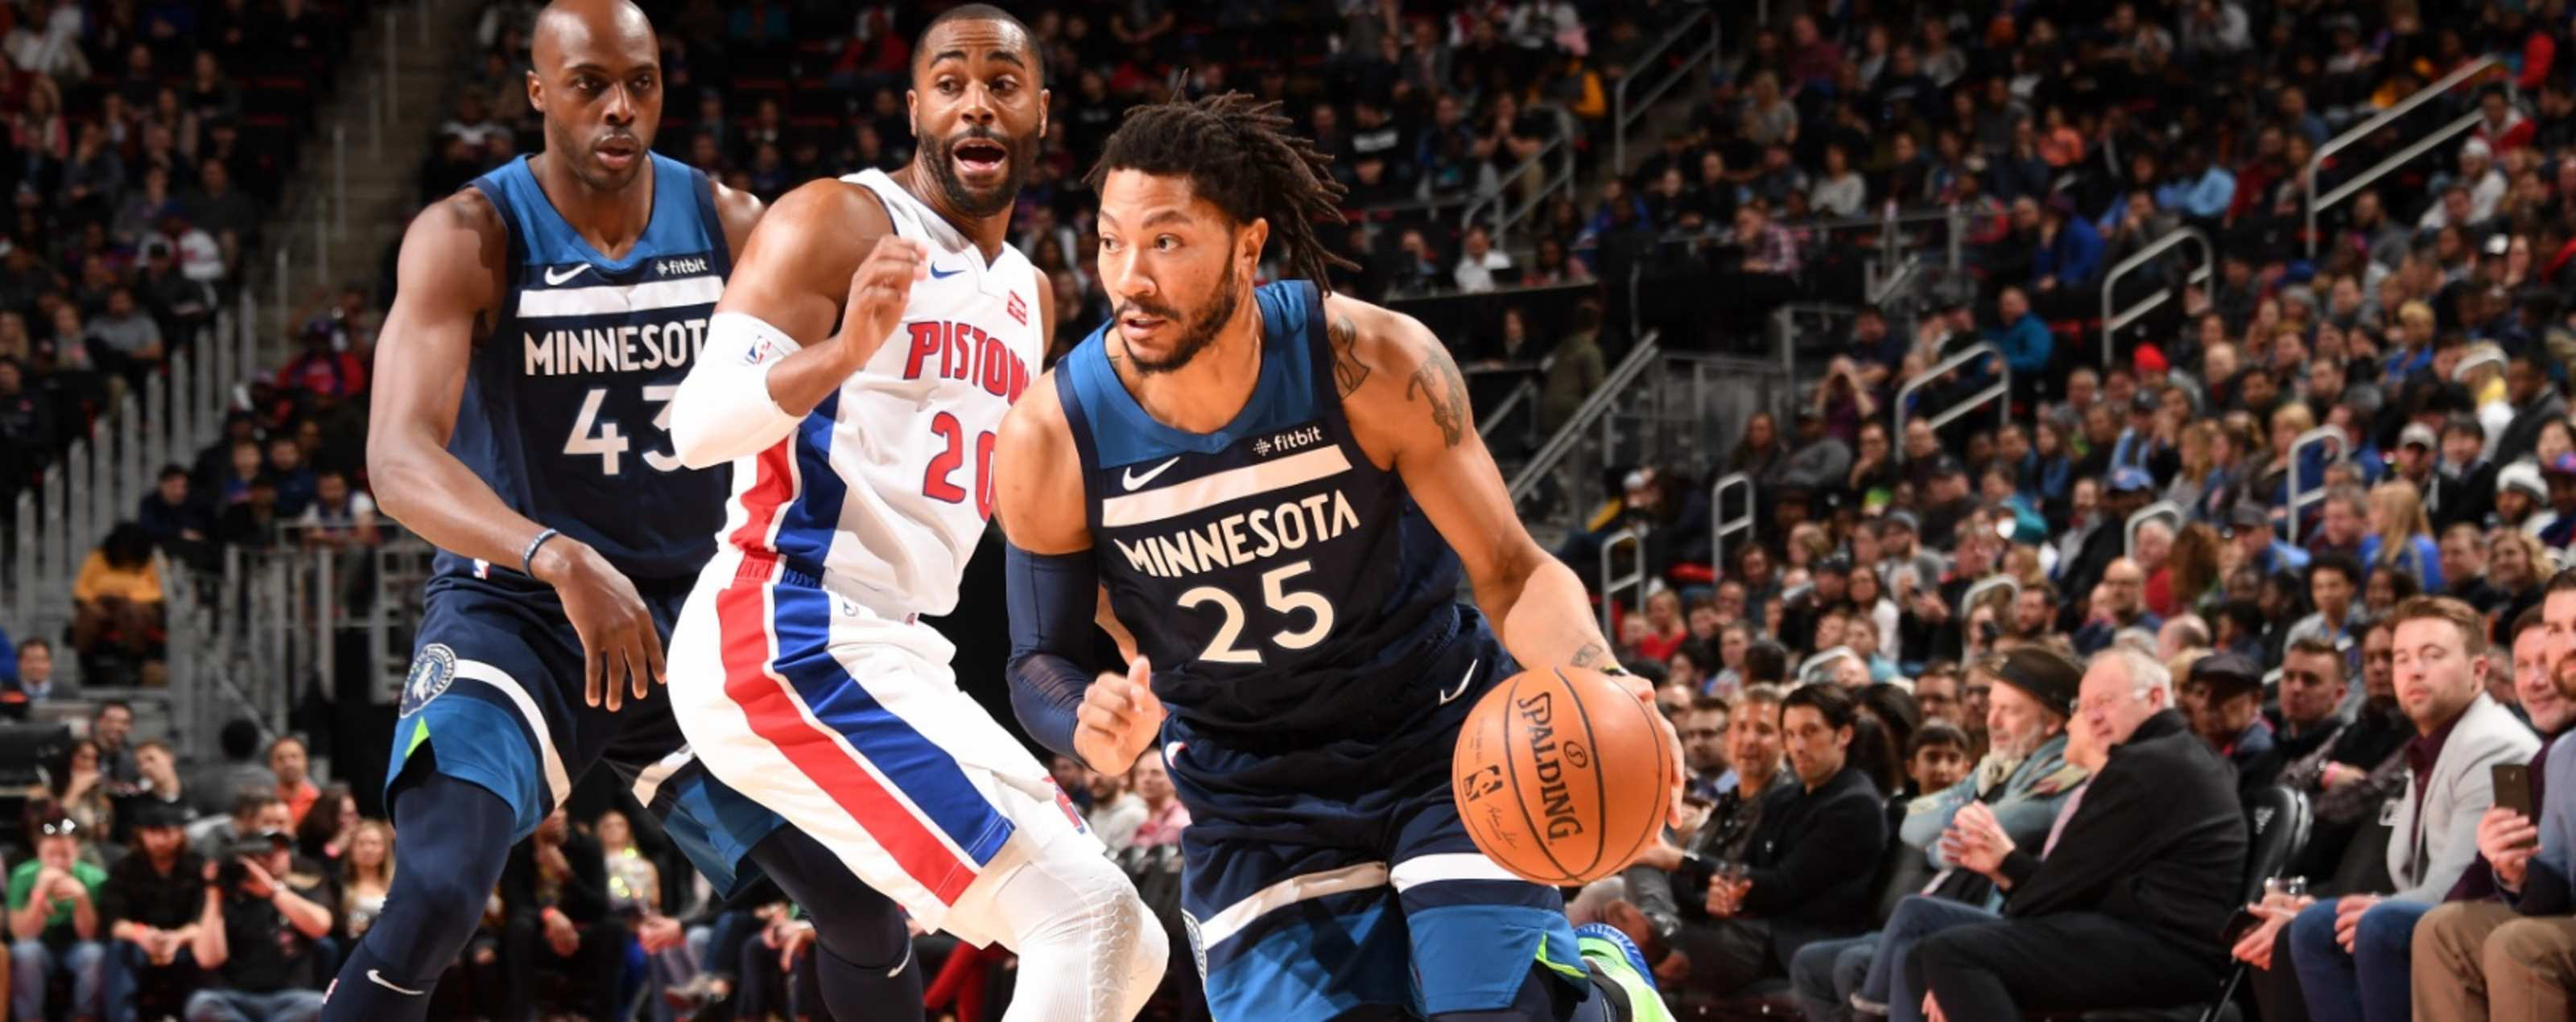 69ef1e8c44da Derrick Rose drives to the basket